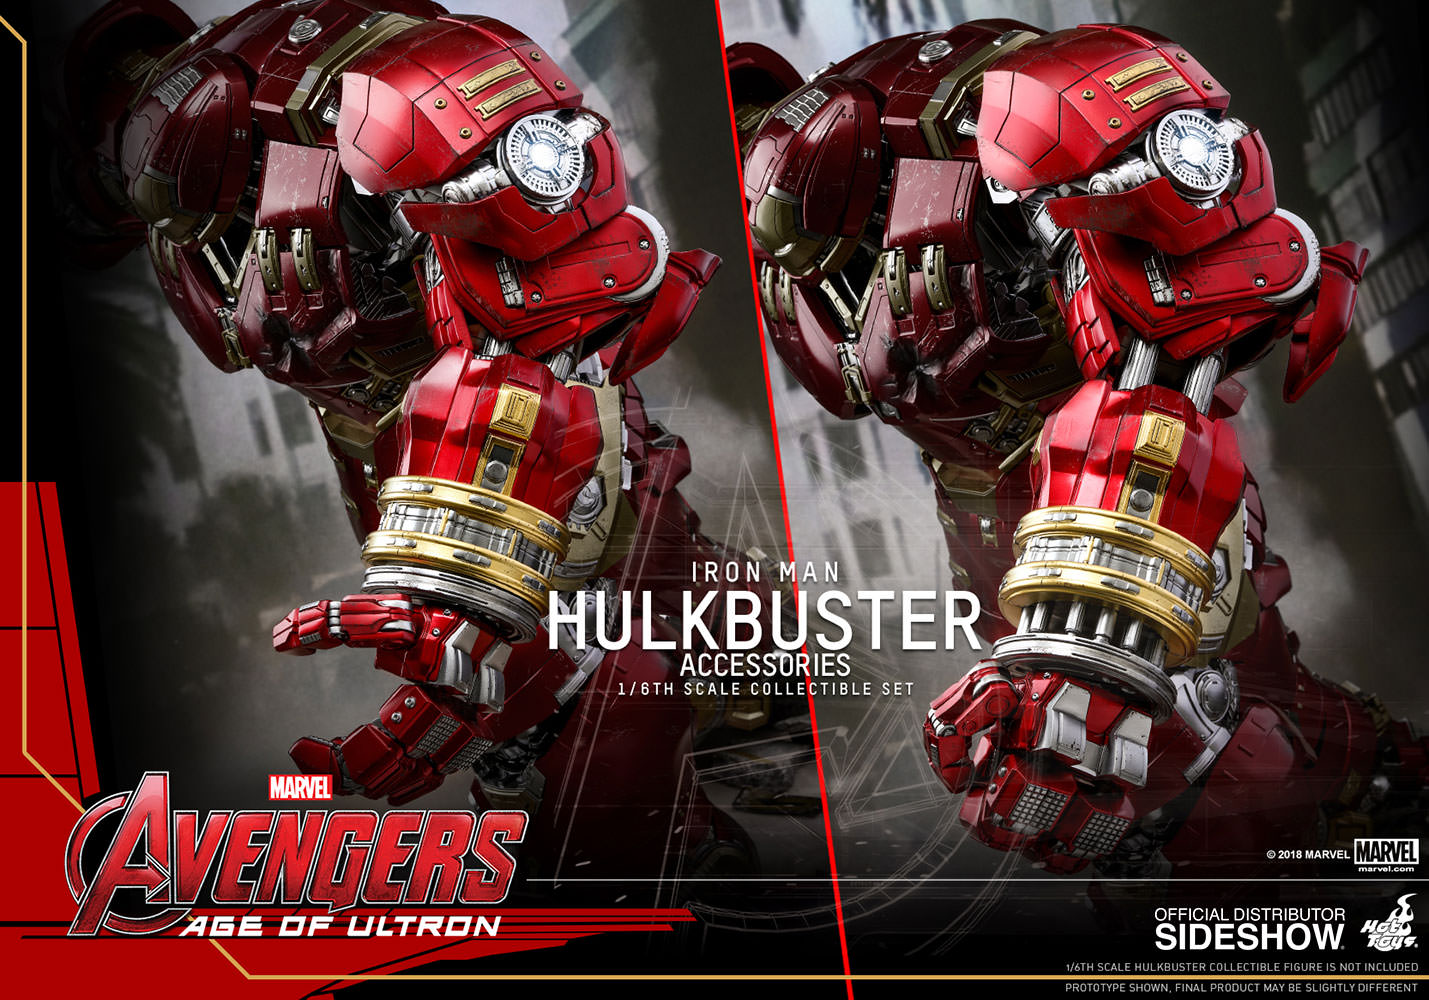 Hulkbuster Accessories Collectible Set Prototype Shown Hot Toys